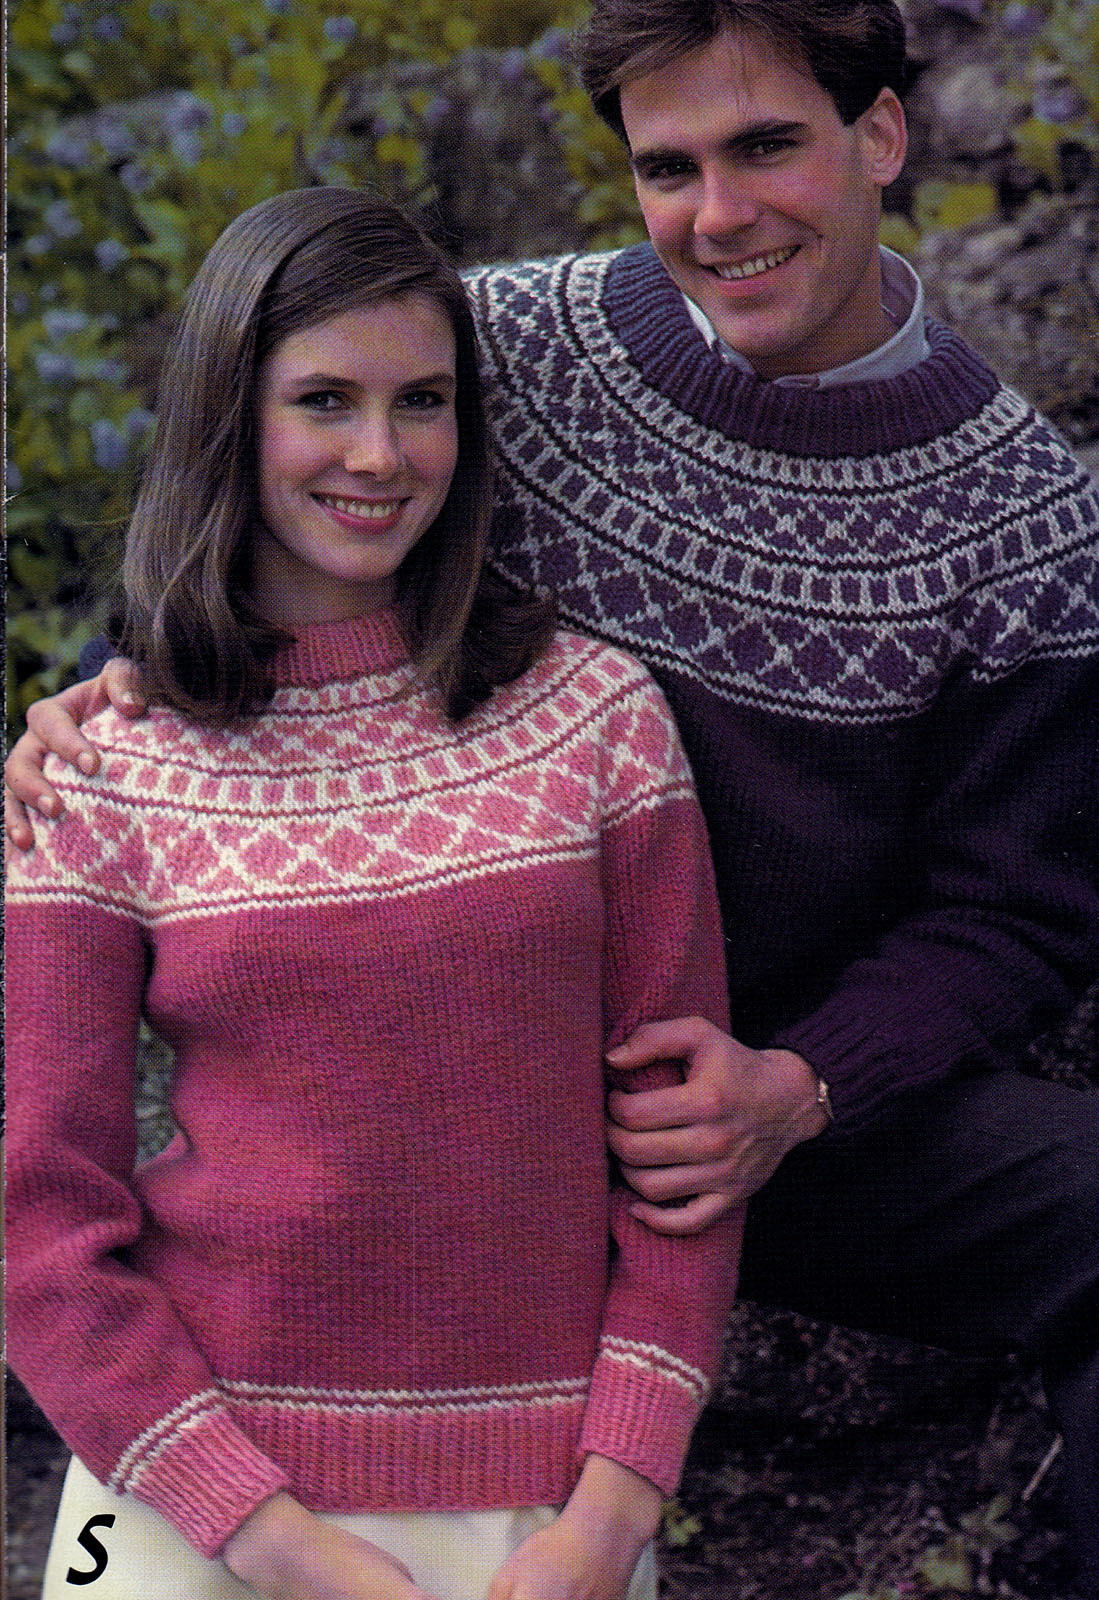 Primary image for CHUNKY KNITS FAMILY BEEHIVE PATONS #447 PULLOVERS CARDIGANS FAIR ISLE ARGYLE